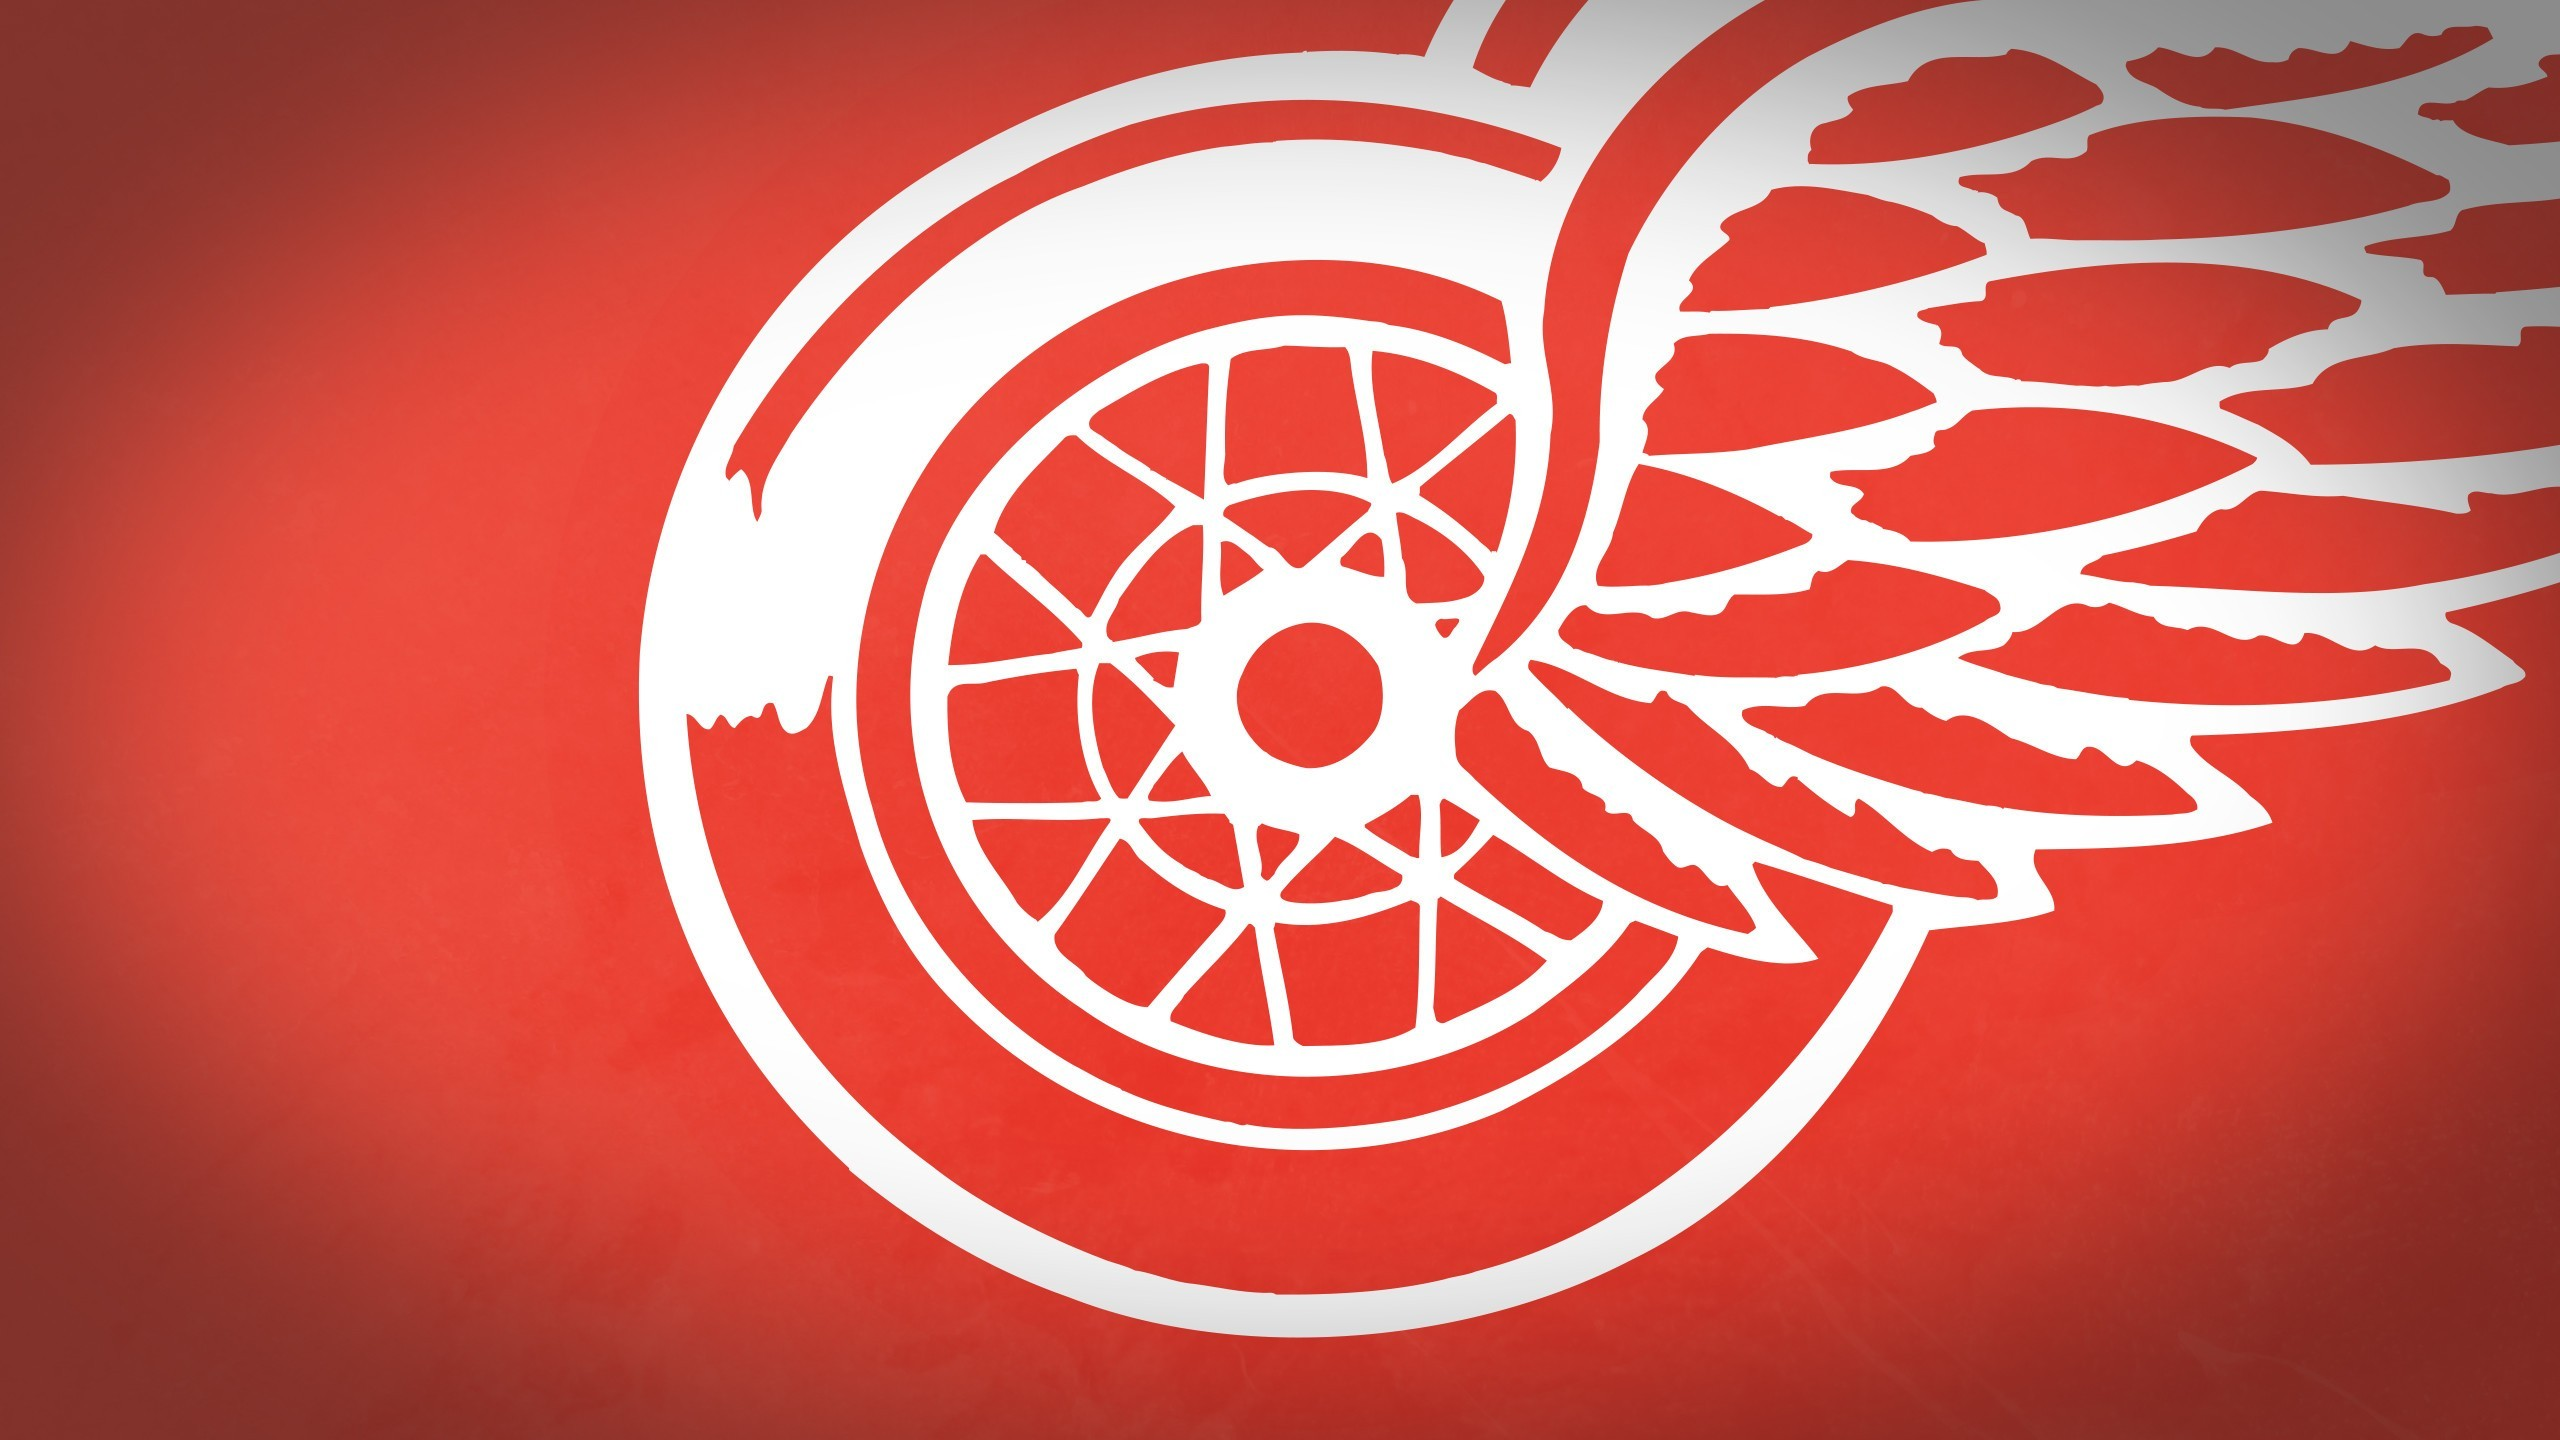 2560x1440 Sports - Detroit Red Wings Wallpaper